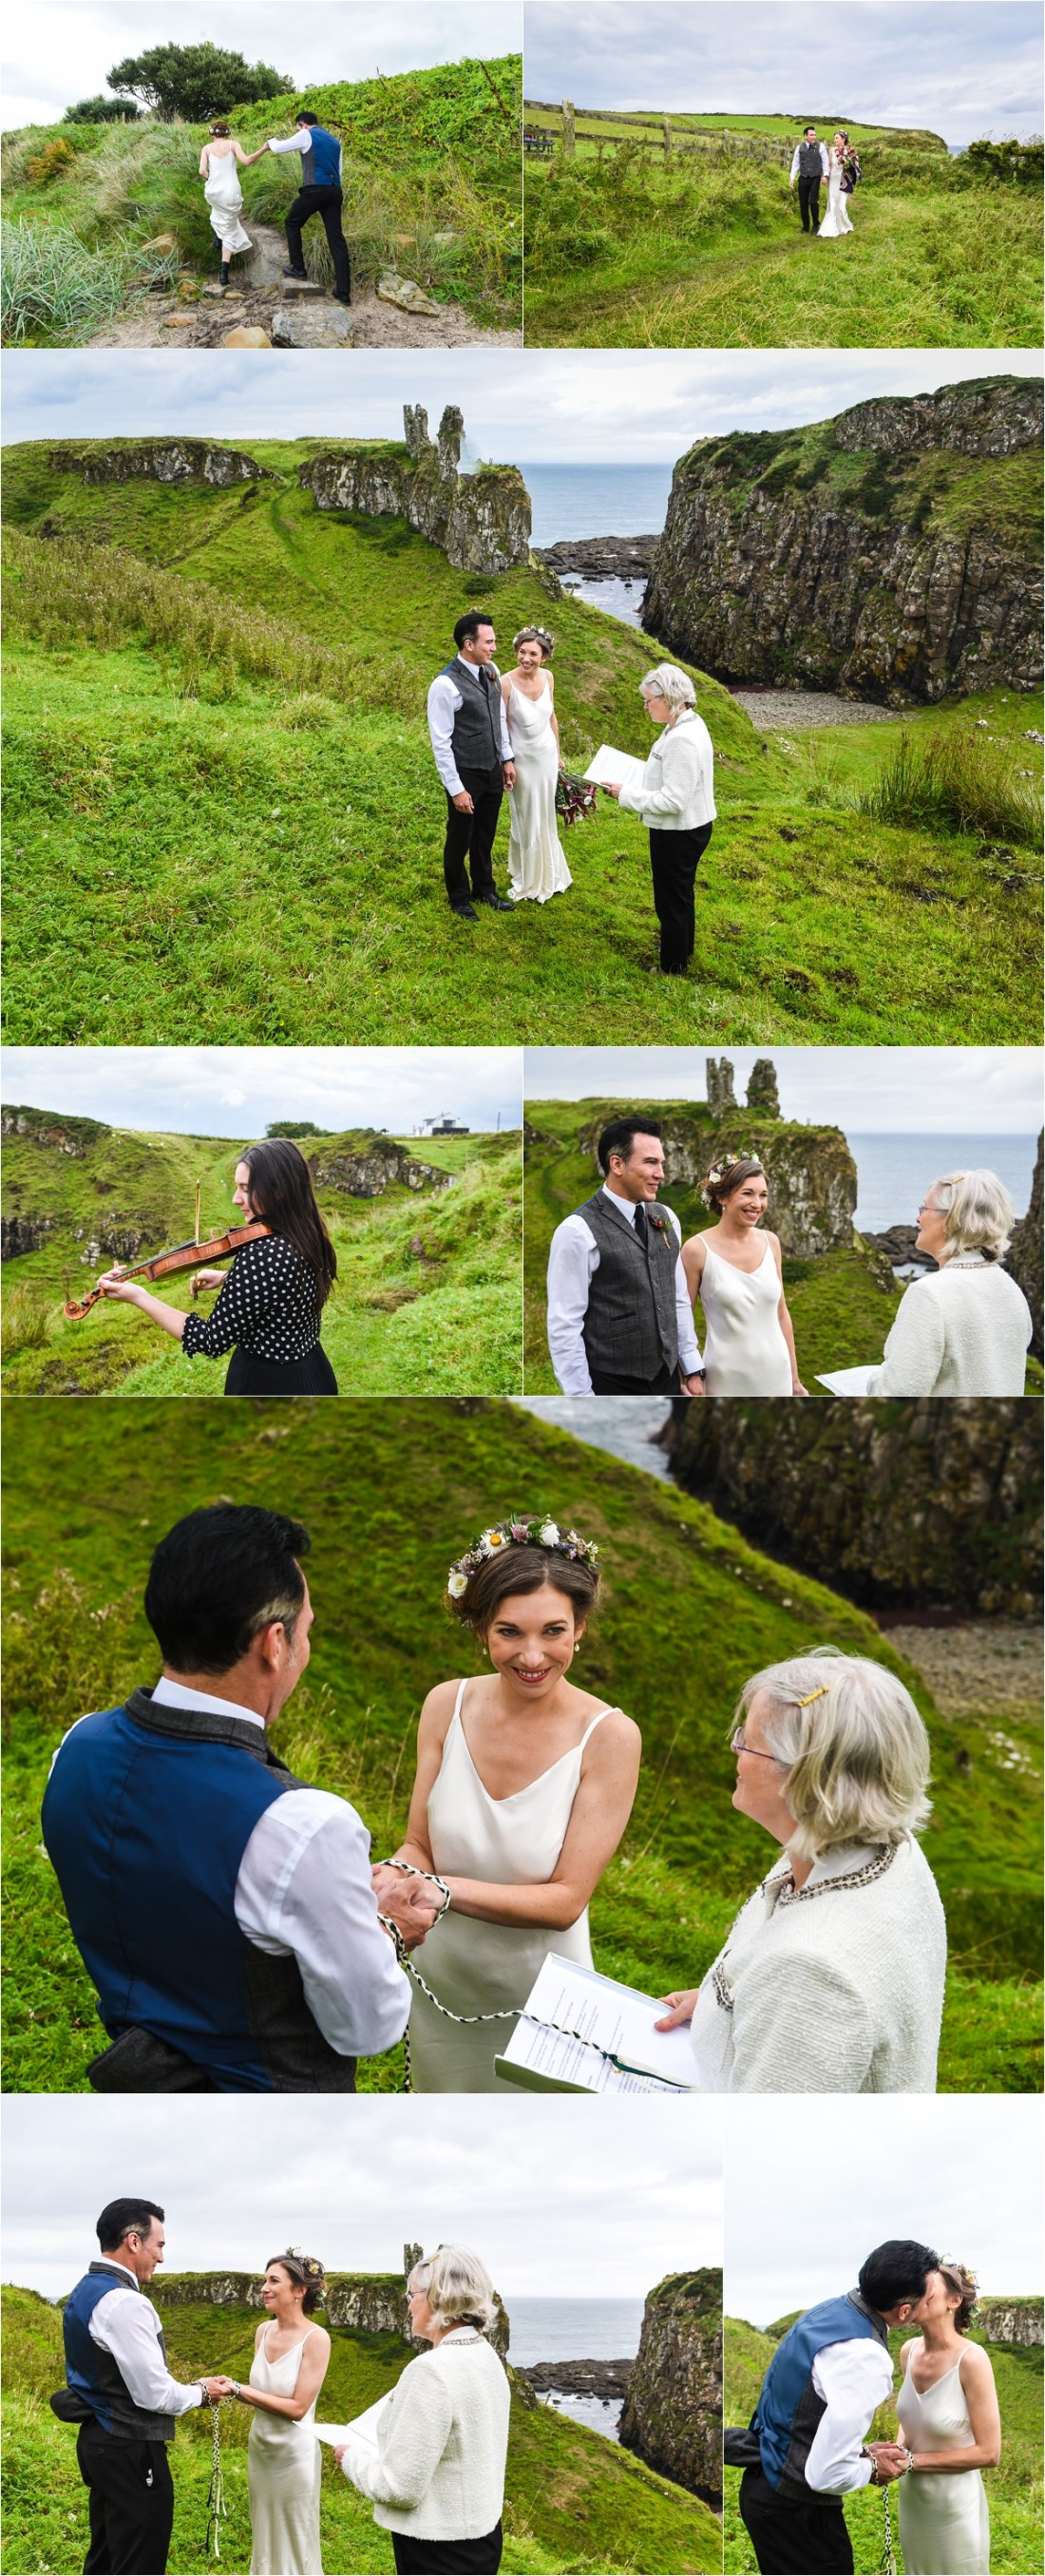 A humanist elopement ceremony in Northern Ireland by Collette Creative